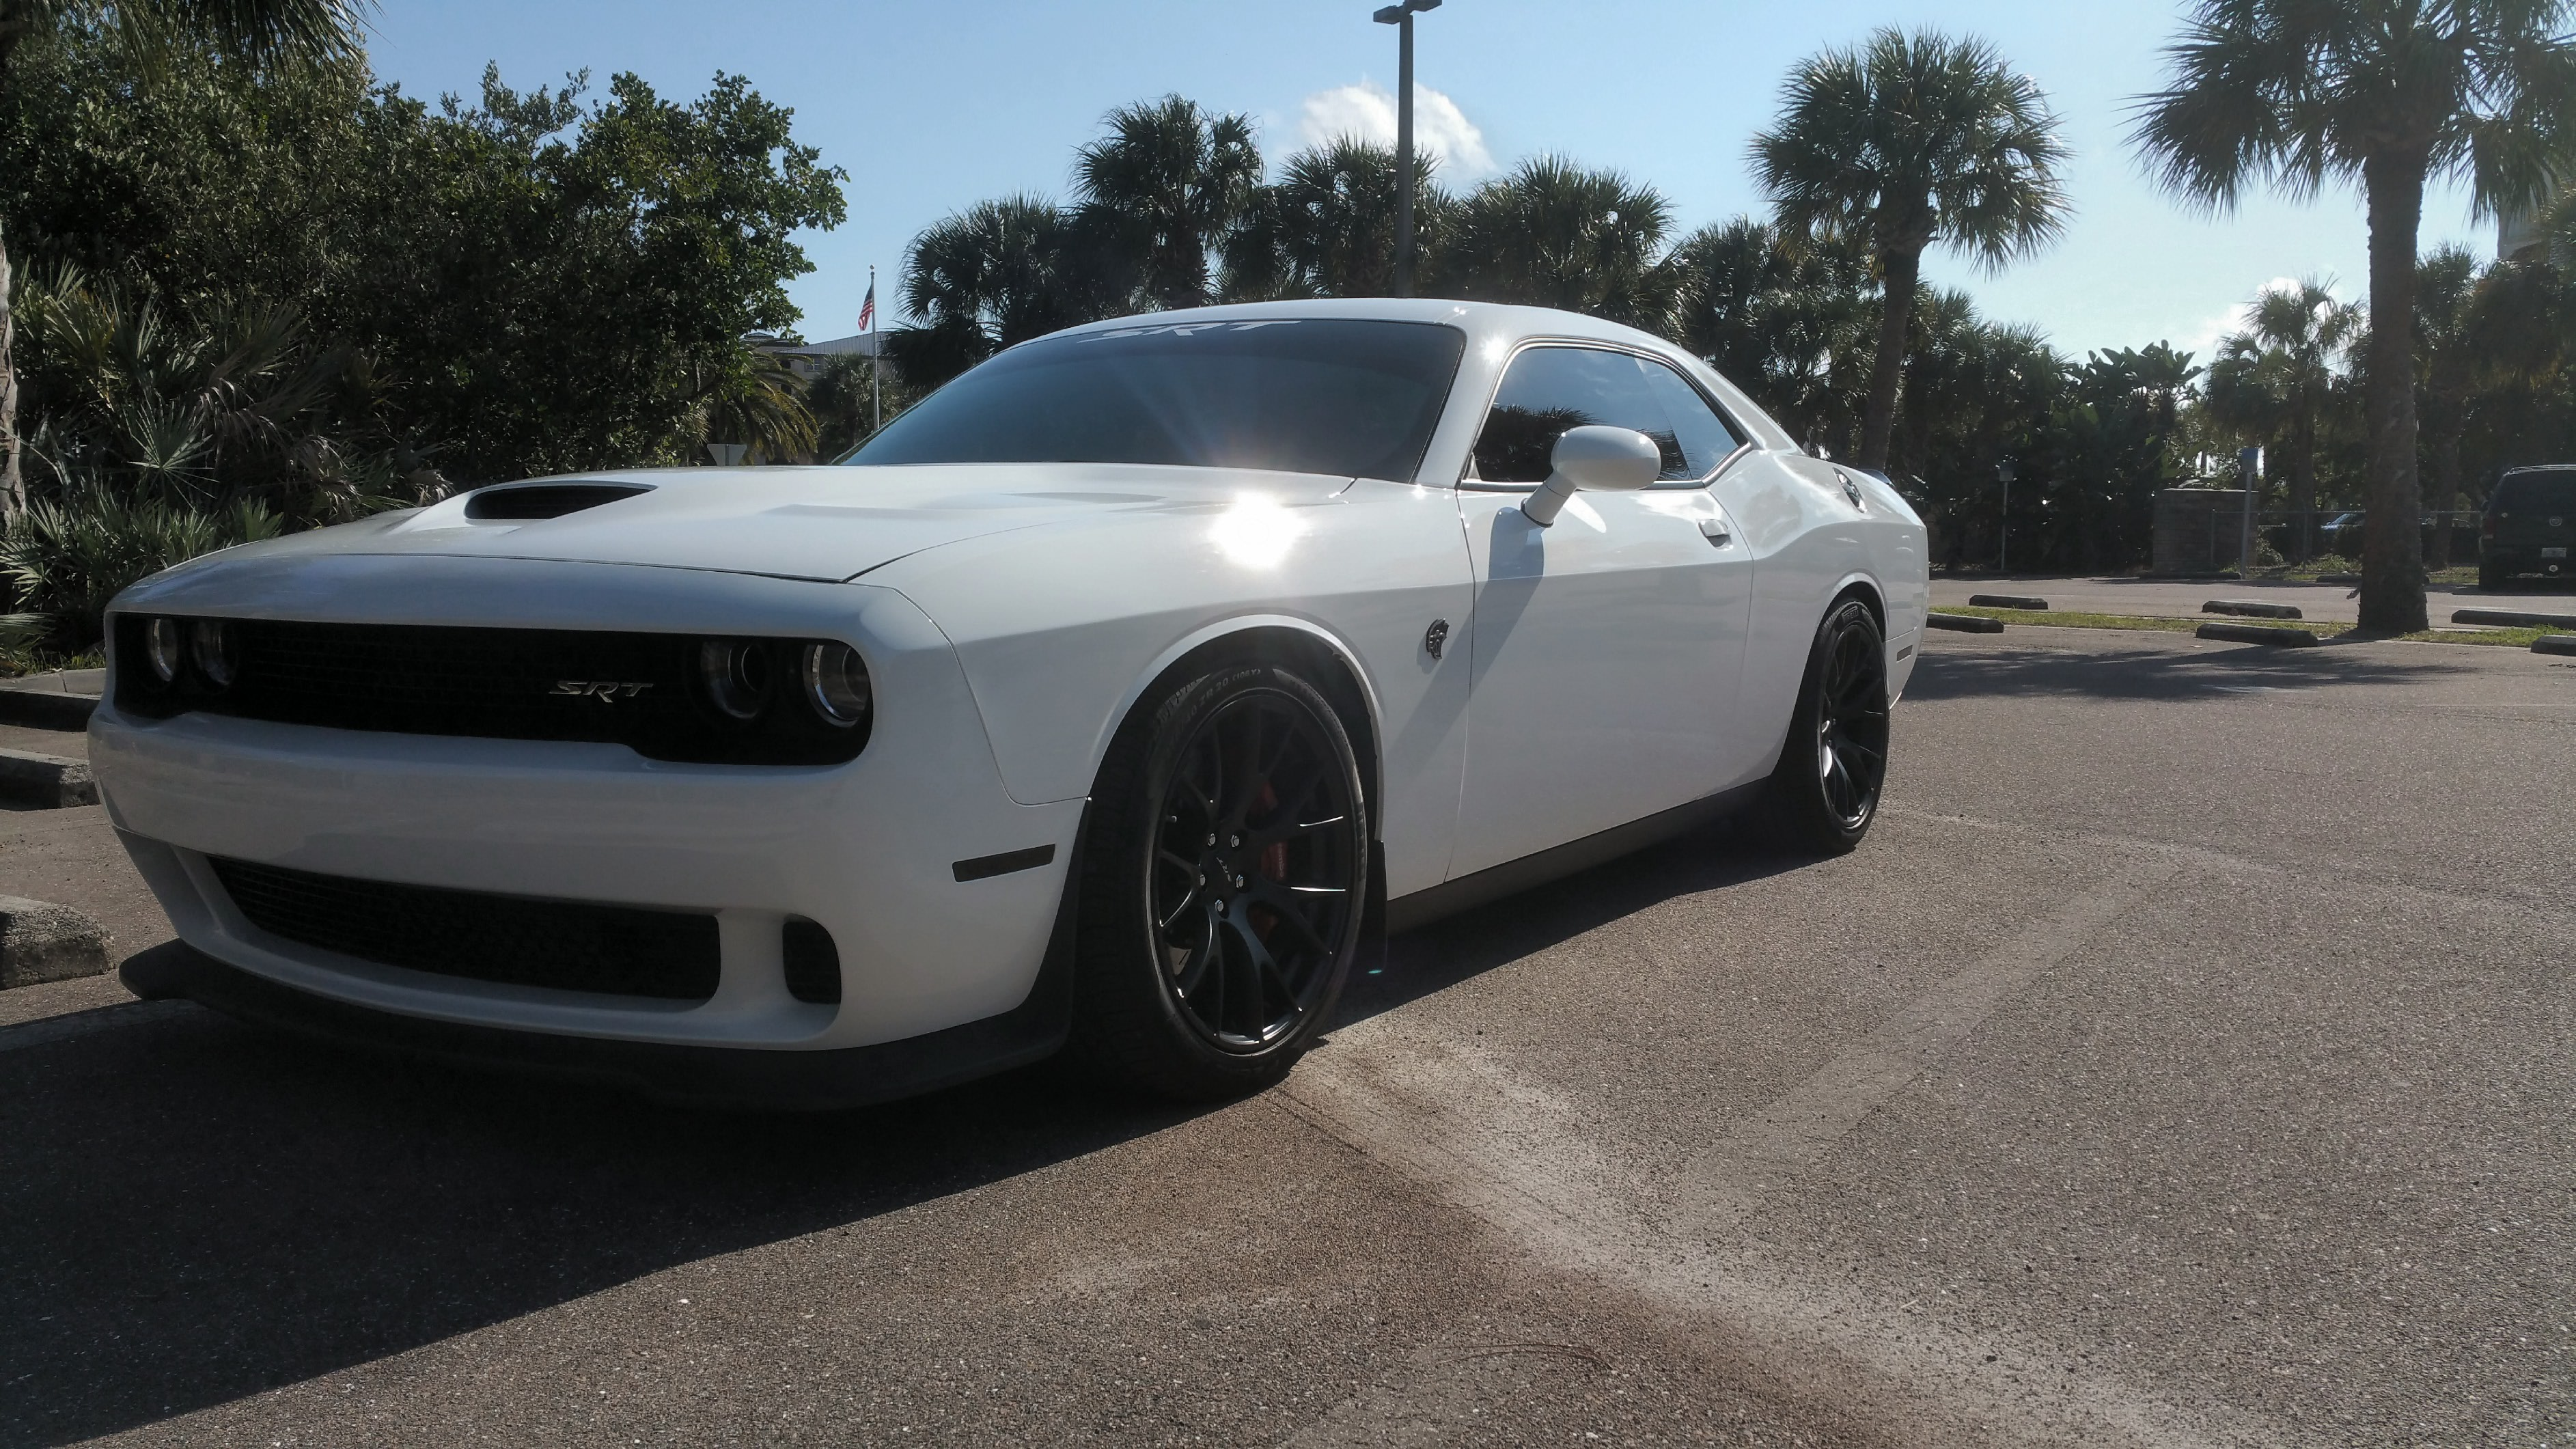 Another Cat Lowered With Mopar Springs1 2 Coil Cut From The Rear 2015 Dodge Srt Charger 10 11 221419jpeg